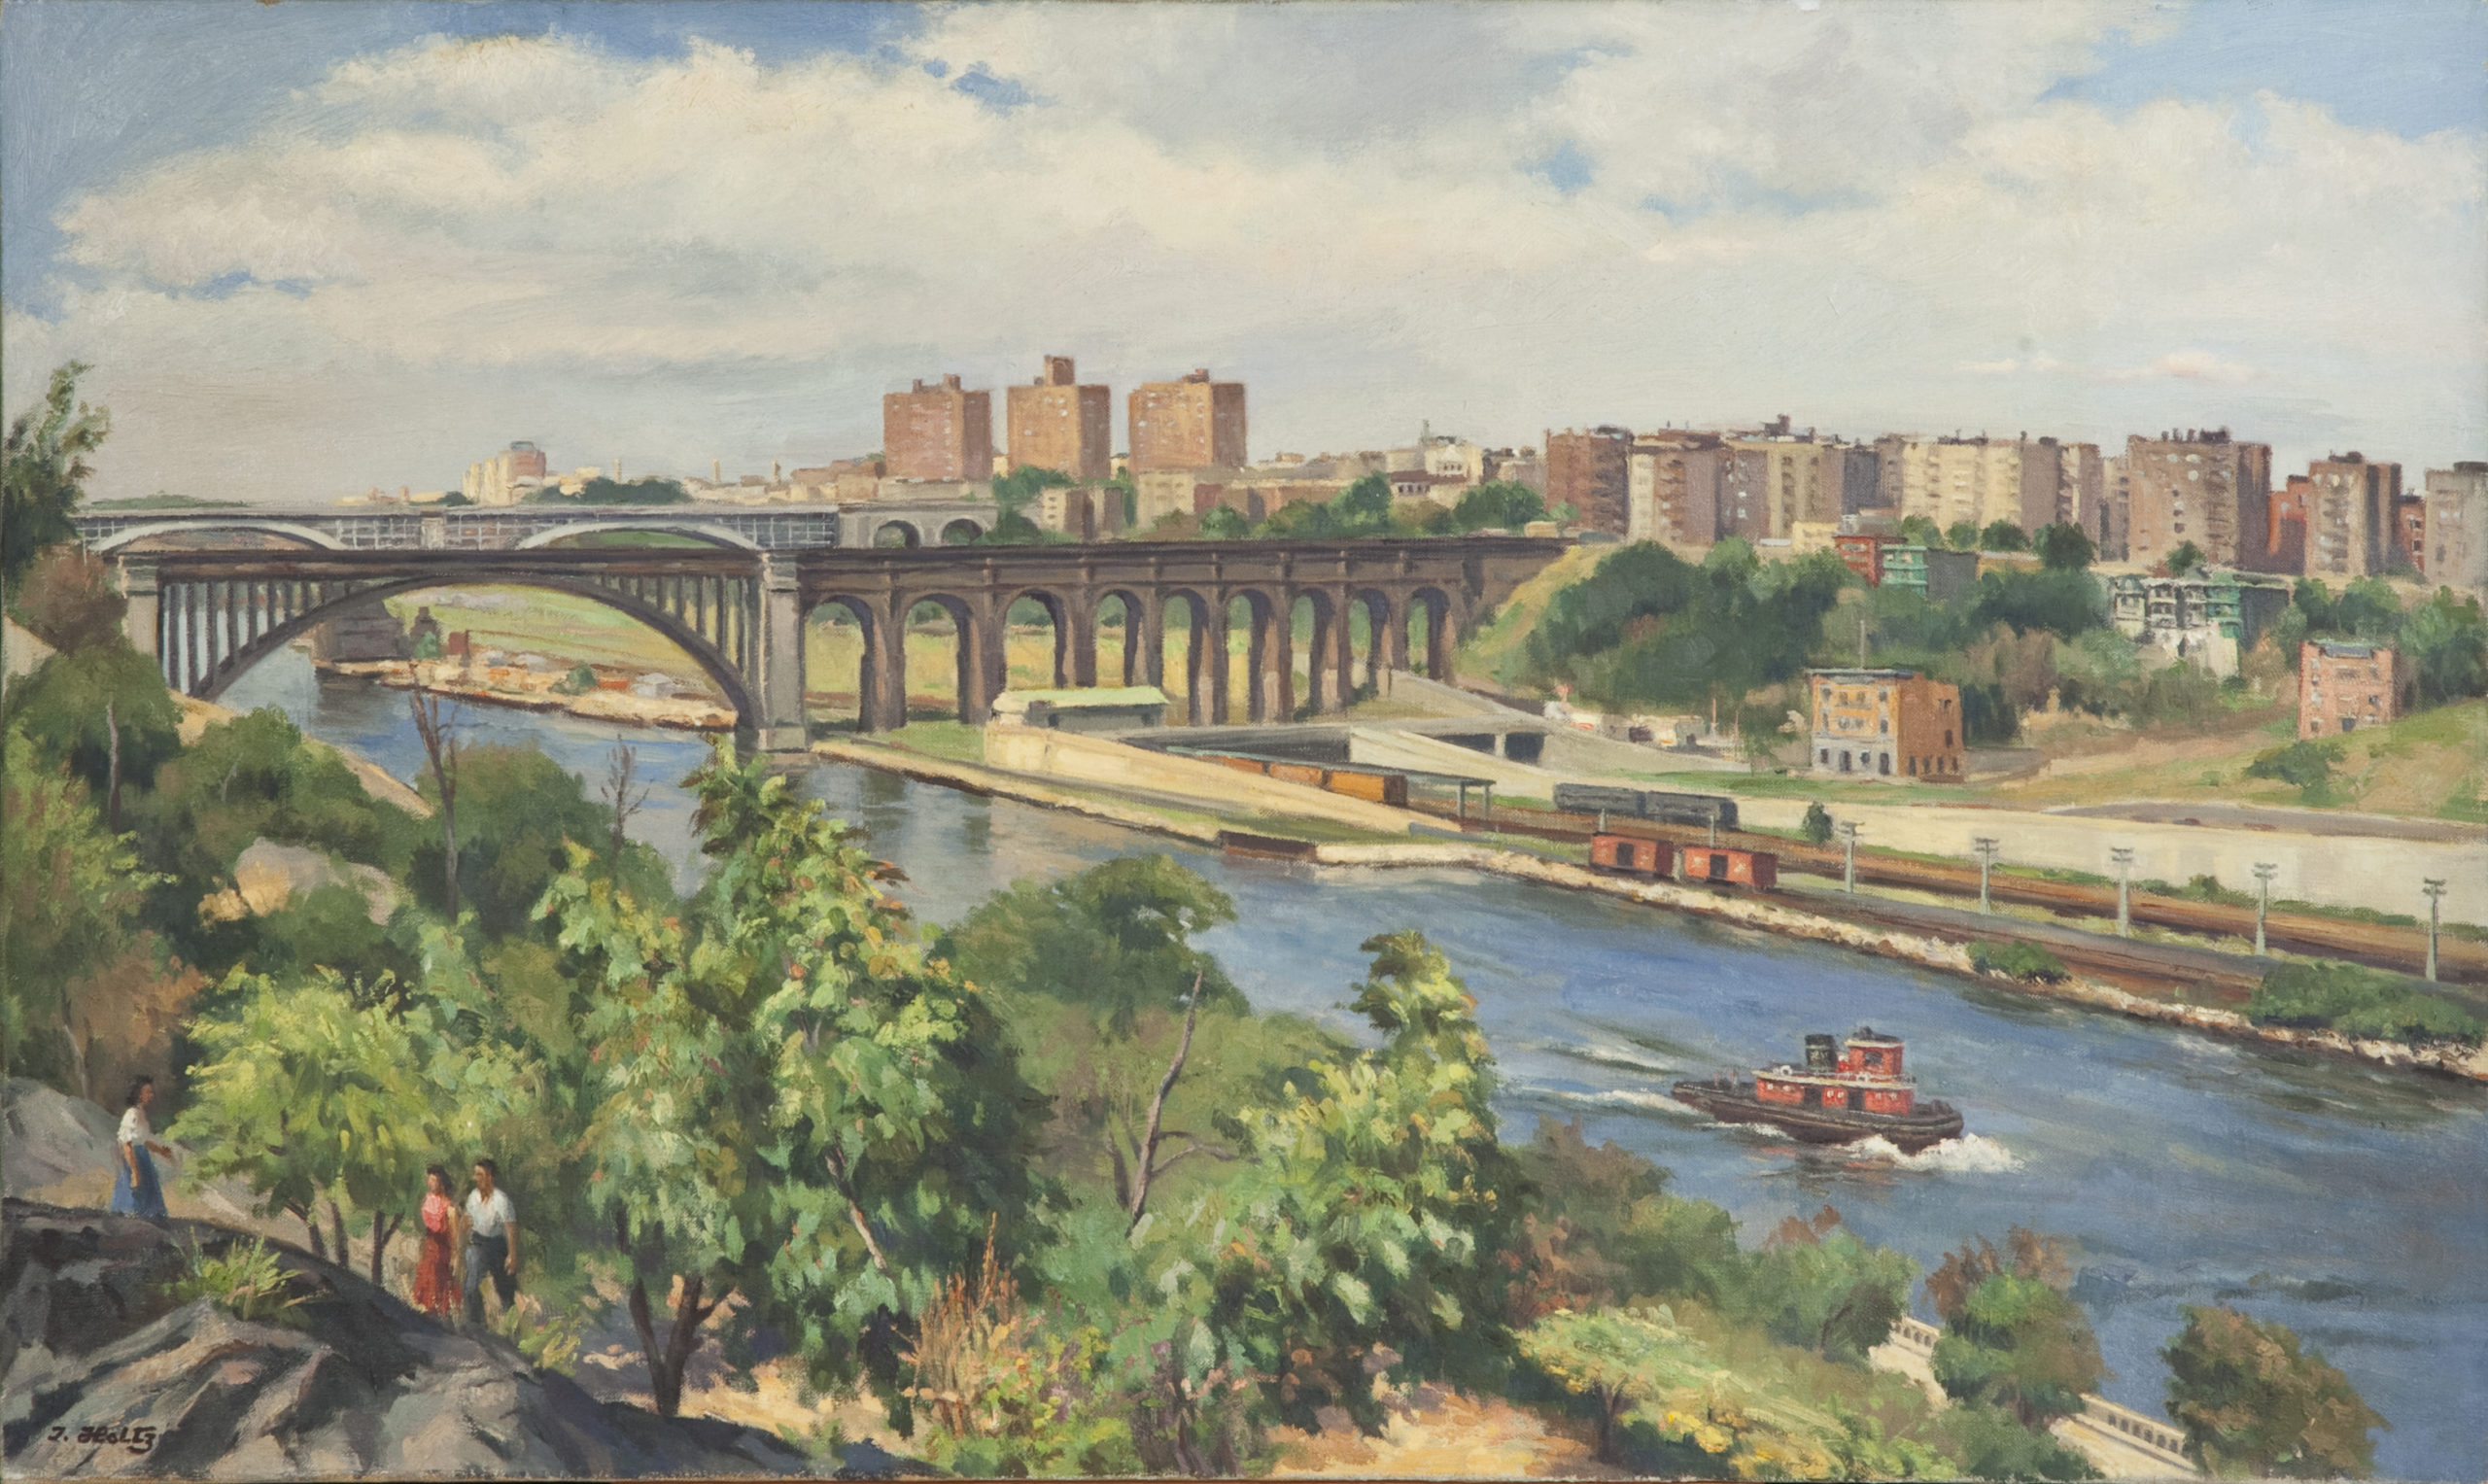 189 East River 1957 - Oil on Canvas - 30.5 x 18 - No Frame